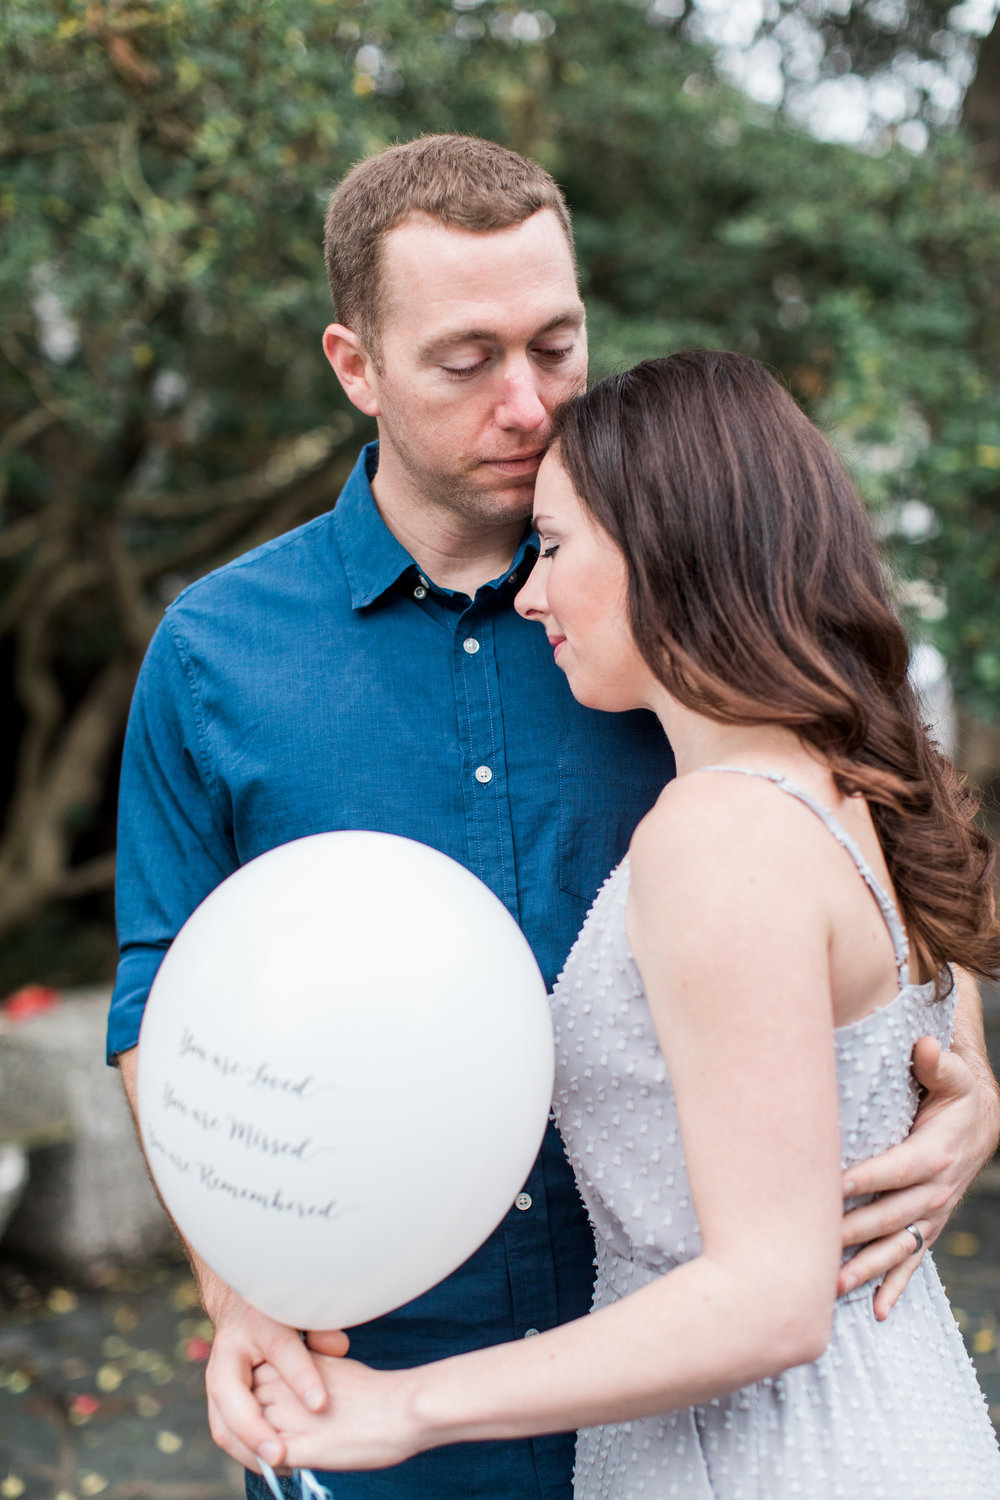 apt-b-photography-ansley-dj-memorial-shoot-savannah-wedding-photographer-lifestyle-portrait-photographer-washington-square-savannah-balloon-release-7.jpg